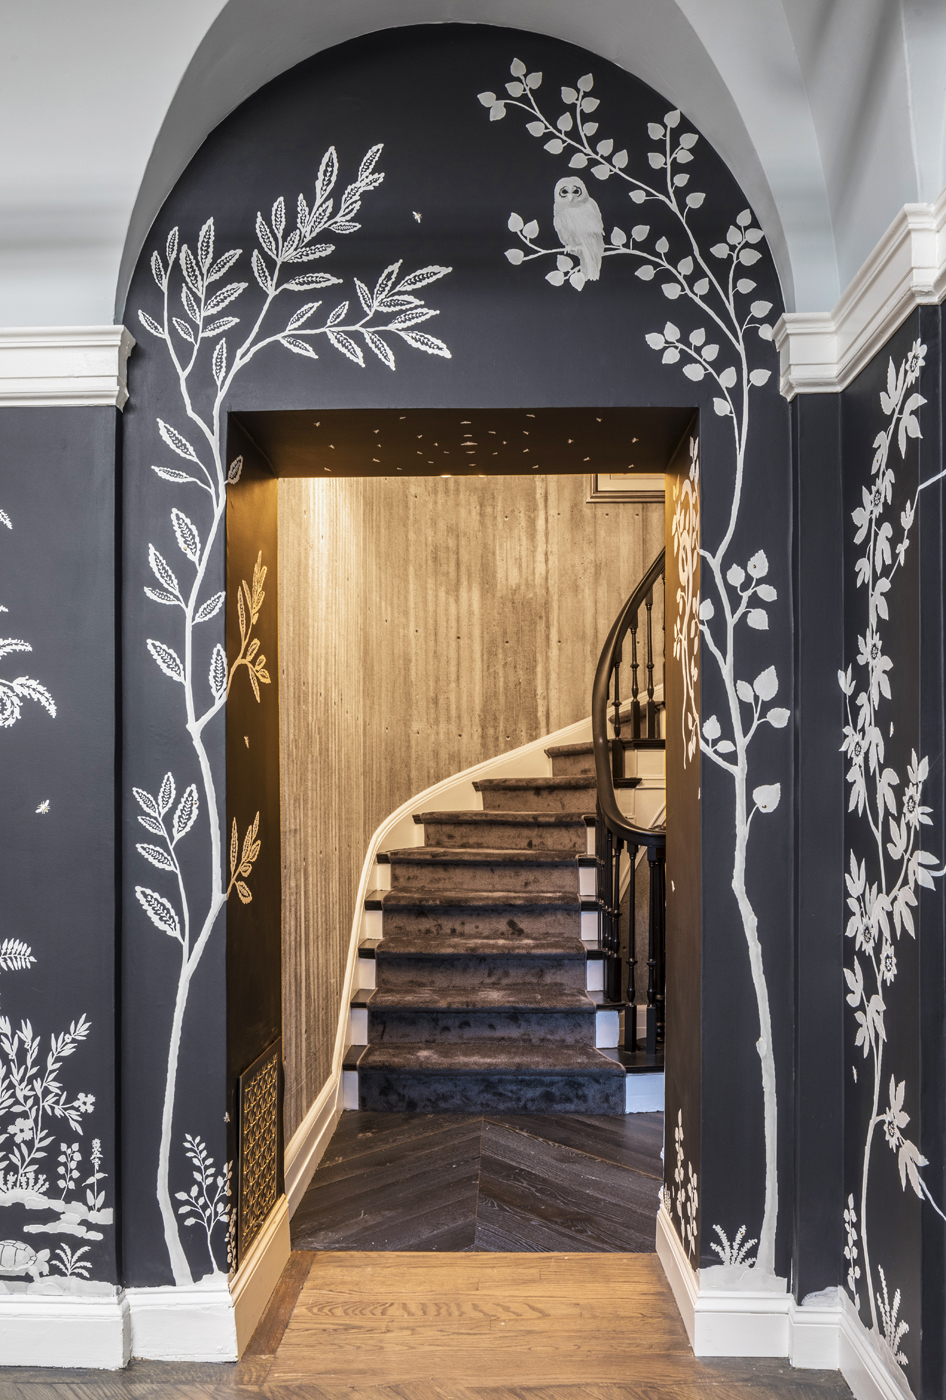 Custom MJ Atelier wallcovering with Tennessee flora and fauna showing owl in landscape | Savage Interior Design